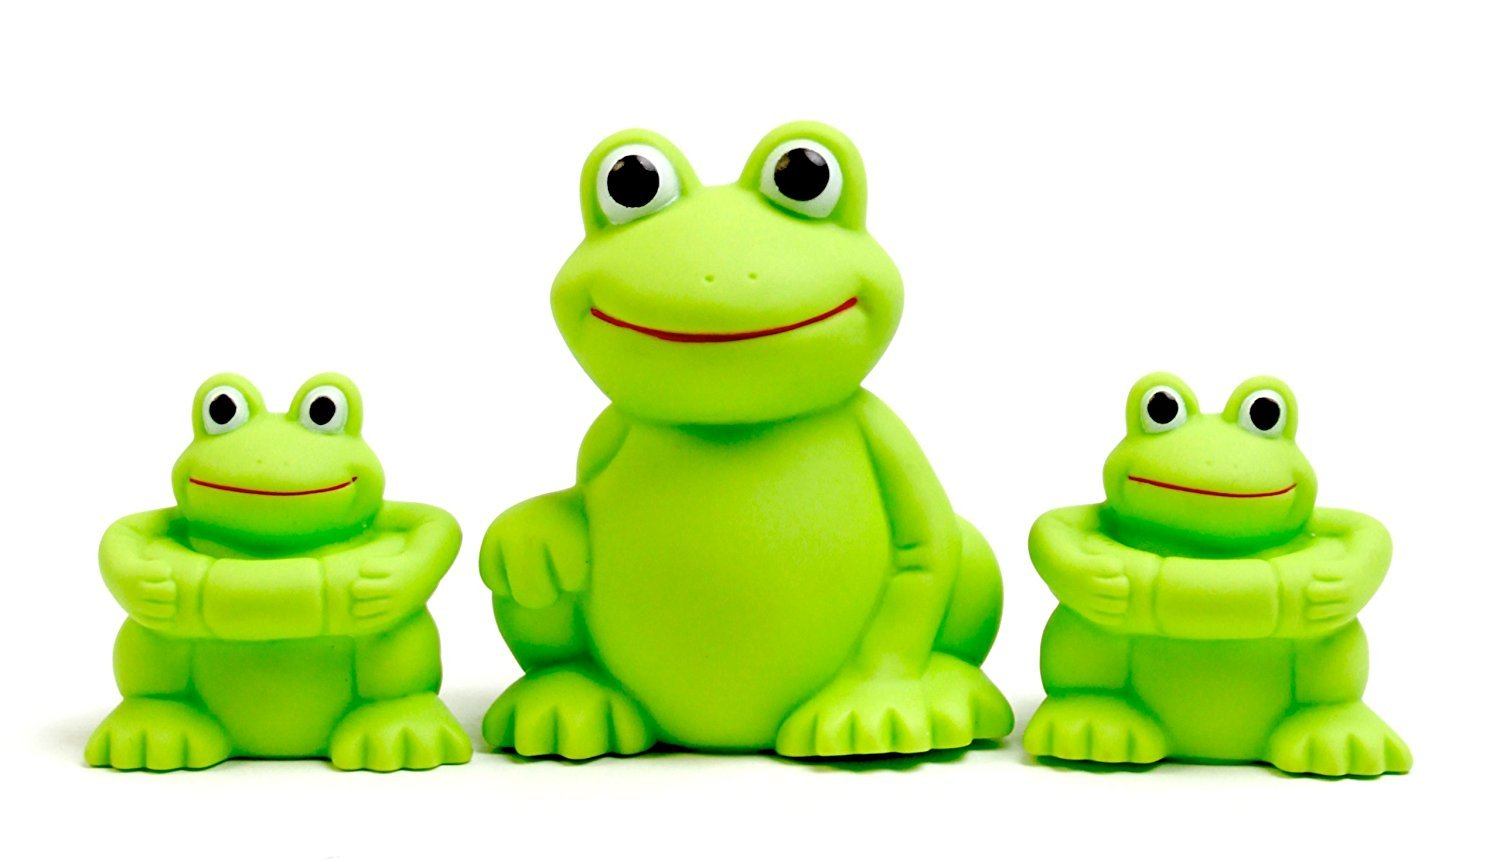 Amazon.com : Vital Baby Play \'n\' Splash Rubber Family, Frogs, 2-Pack ...